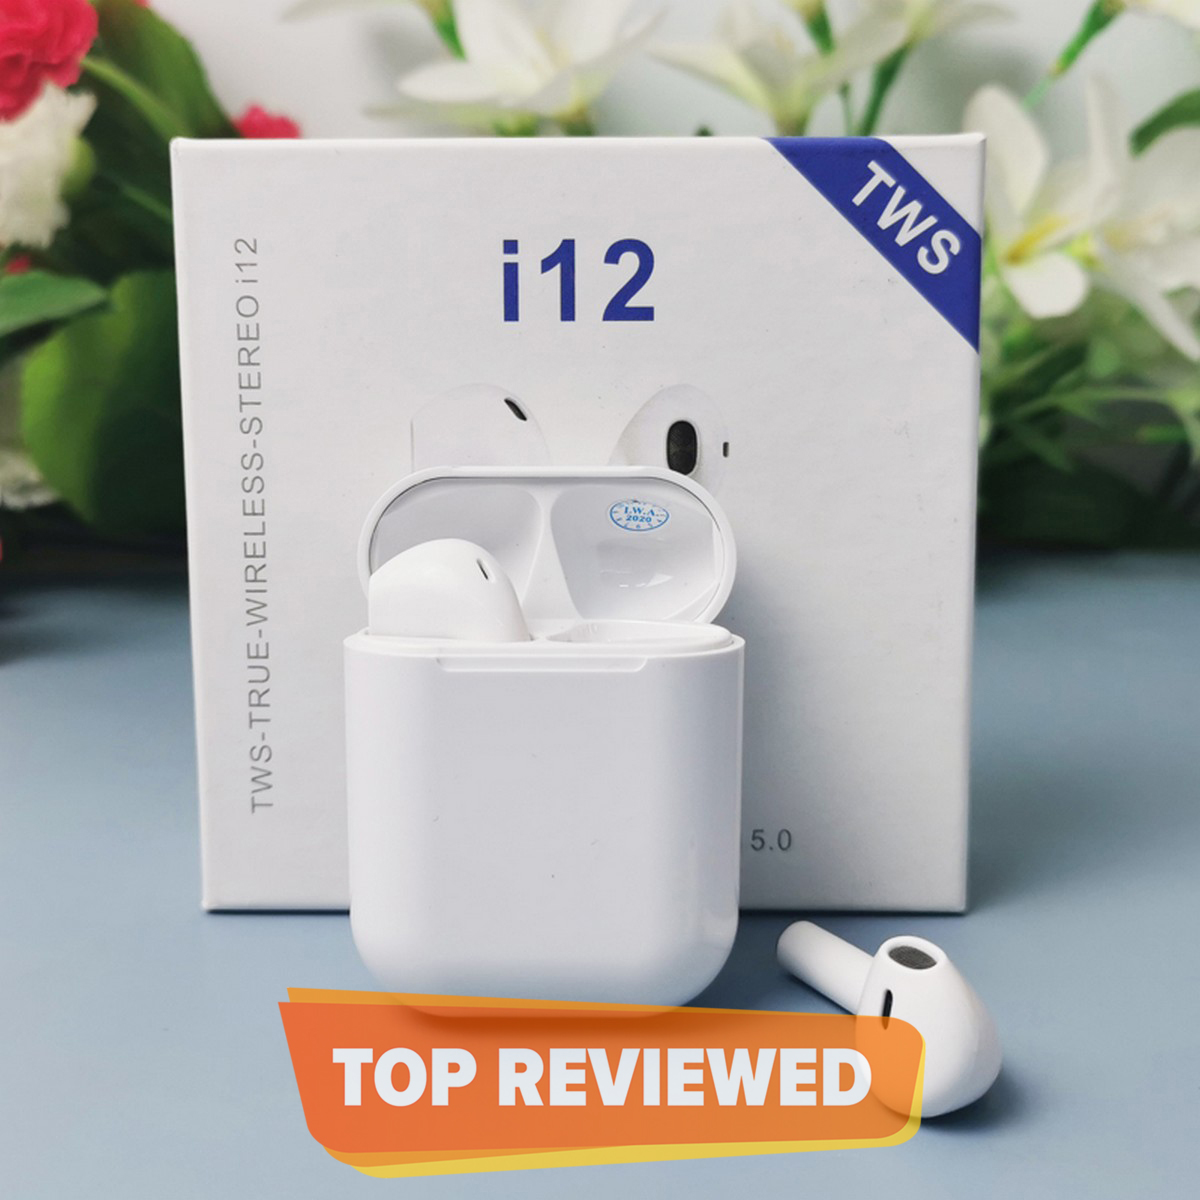 i12 tws Wireless Twins Bluetooth Ear Pods Original Universal Earbuds Headset.  Bluetooth V5.0 Earphone Touch Sensor True Stereo 10m Transmission Built in Mic Earbuds with Charging Case TWS Sport Headset for all Bluetooth devices-White